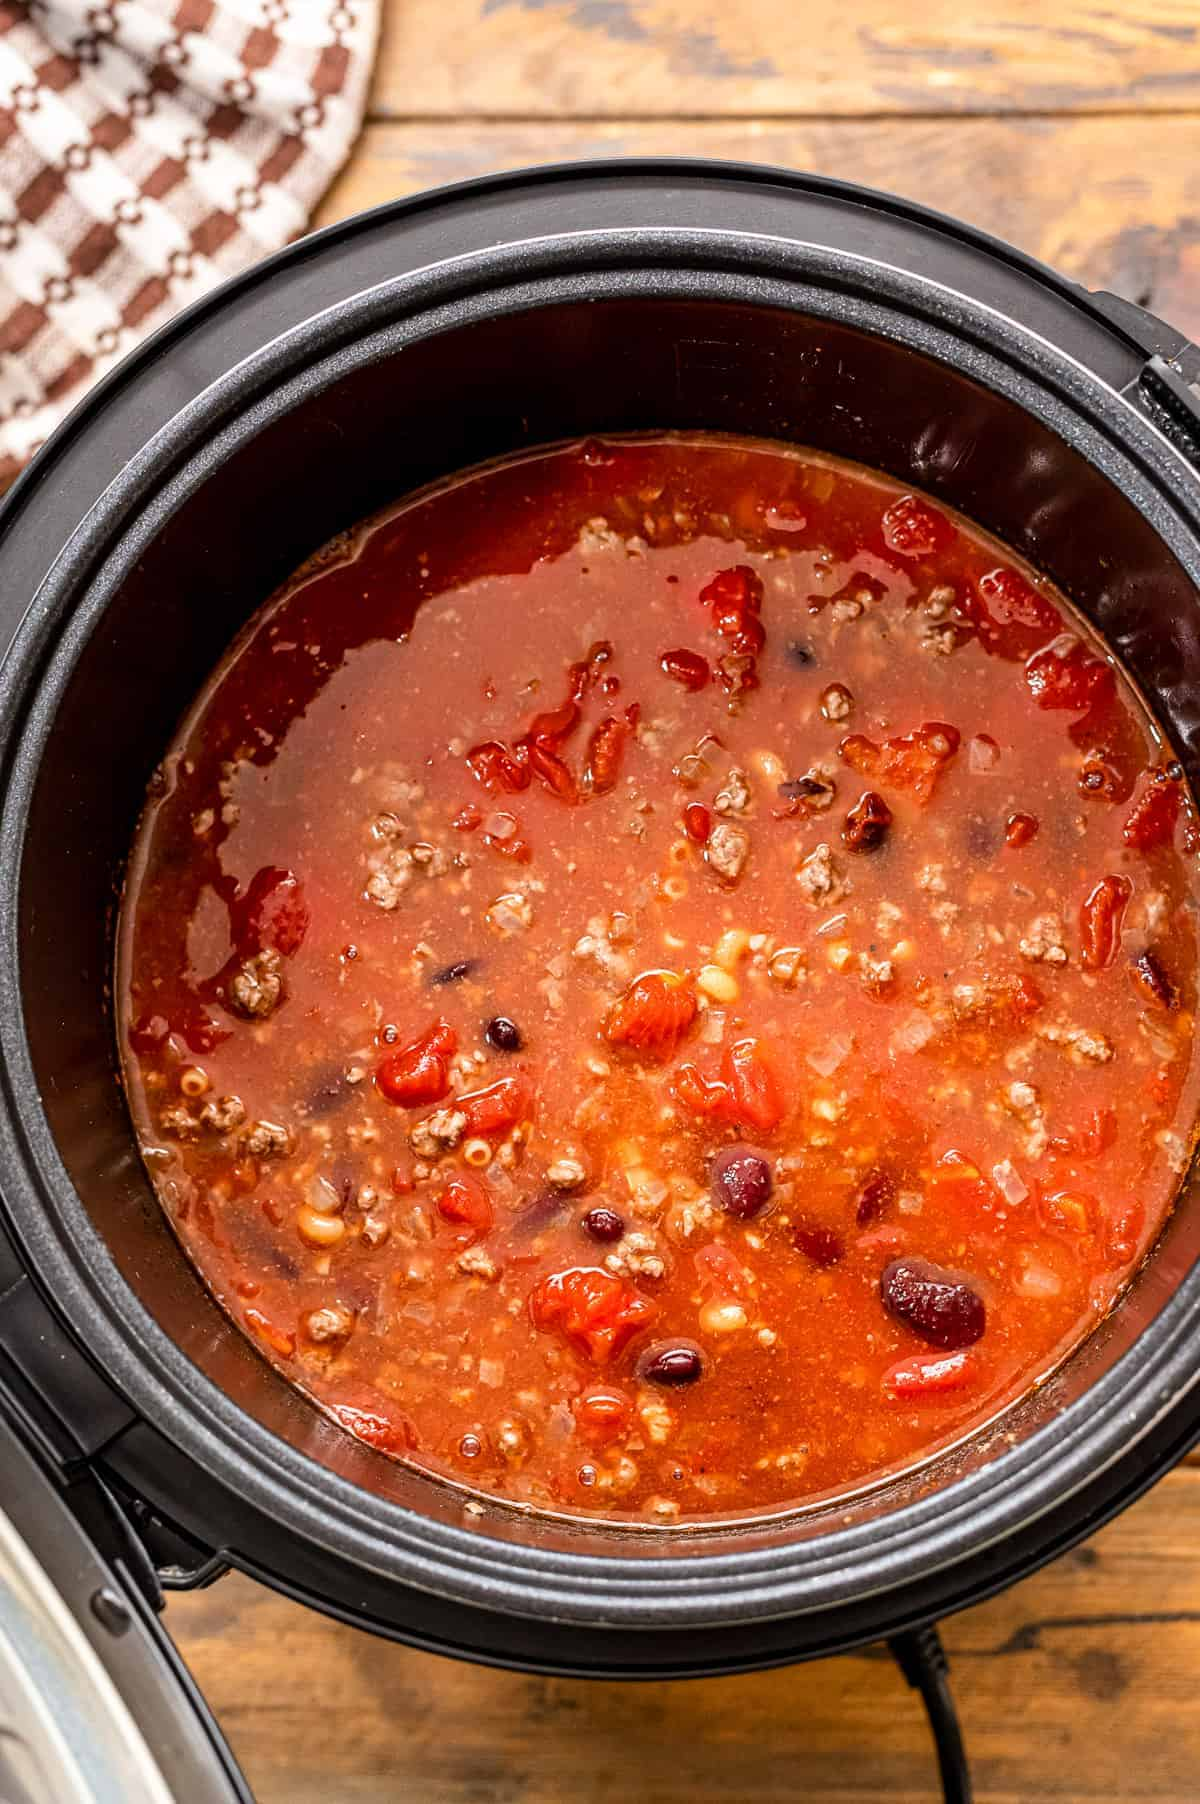 Ingredients for Chili Mac in Instant Pot